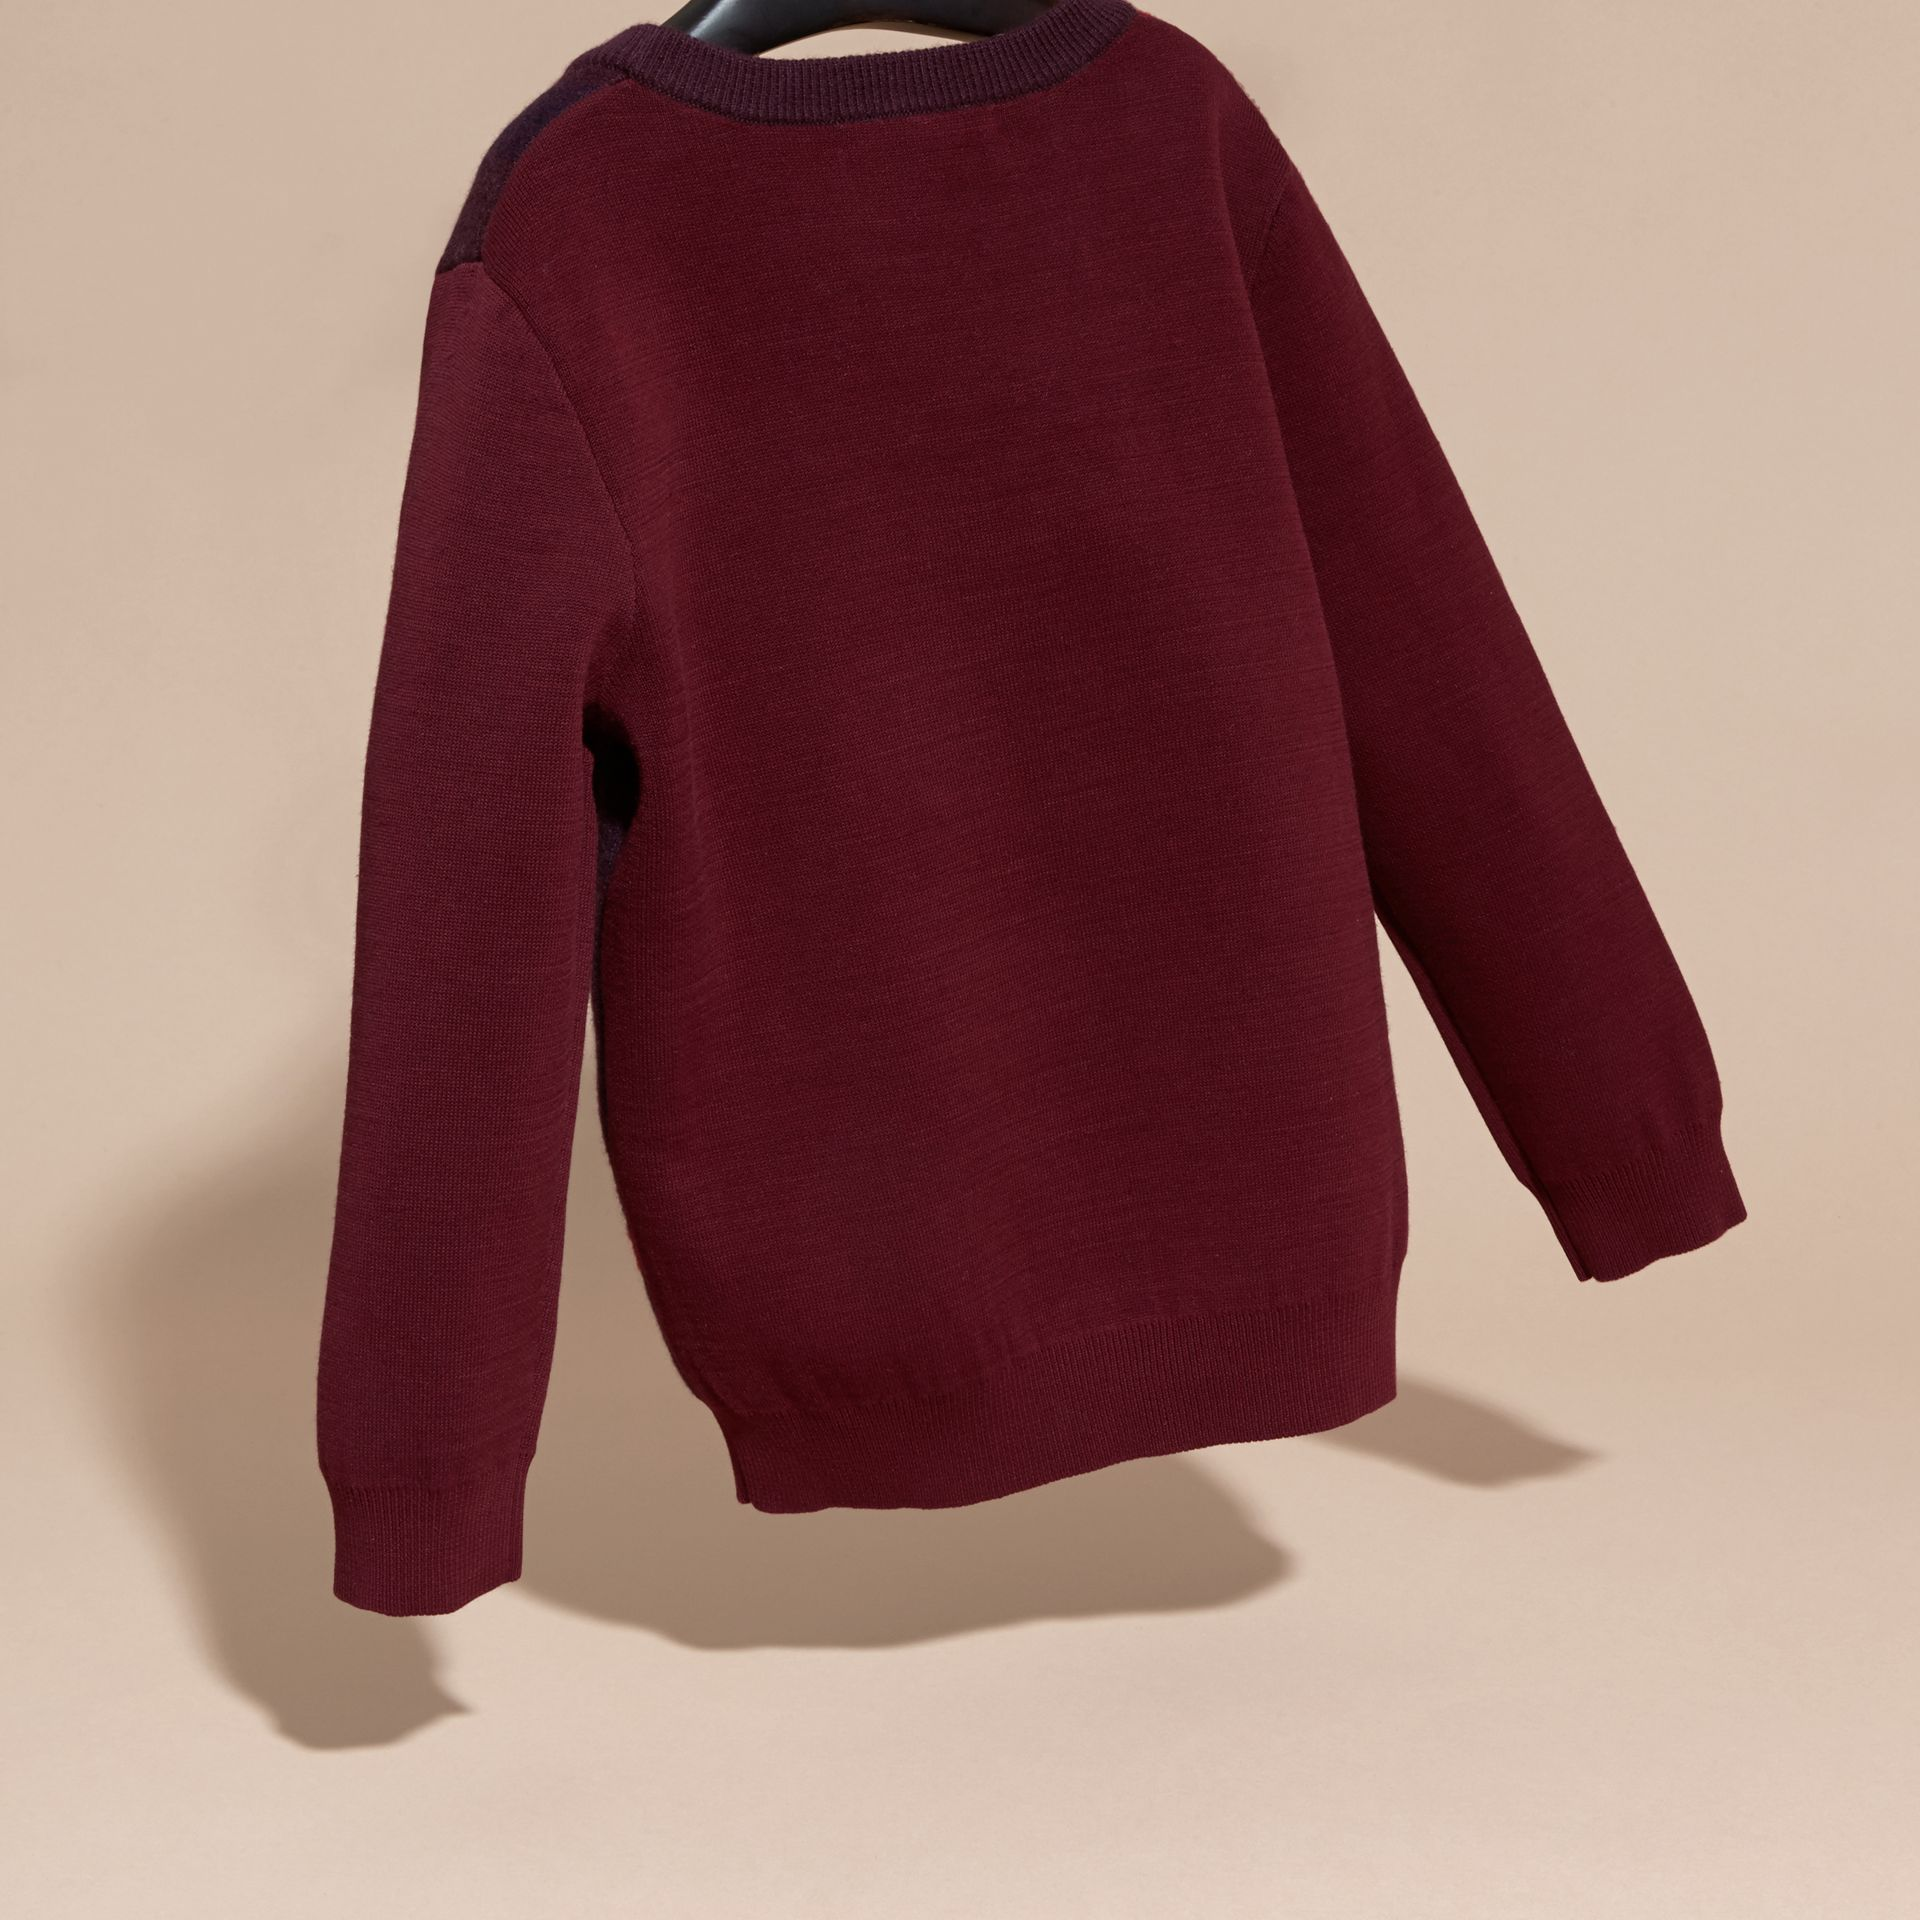 Deep claret Check Wool Cashmere Blend Sweater Deep Claret - gallery image 4